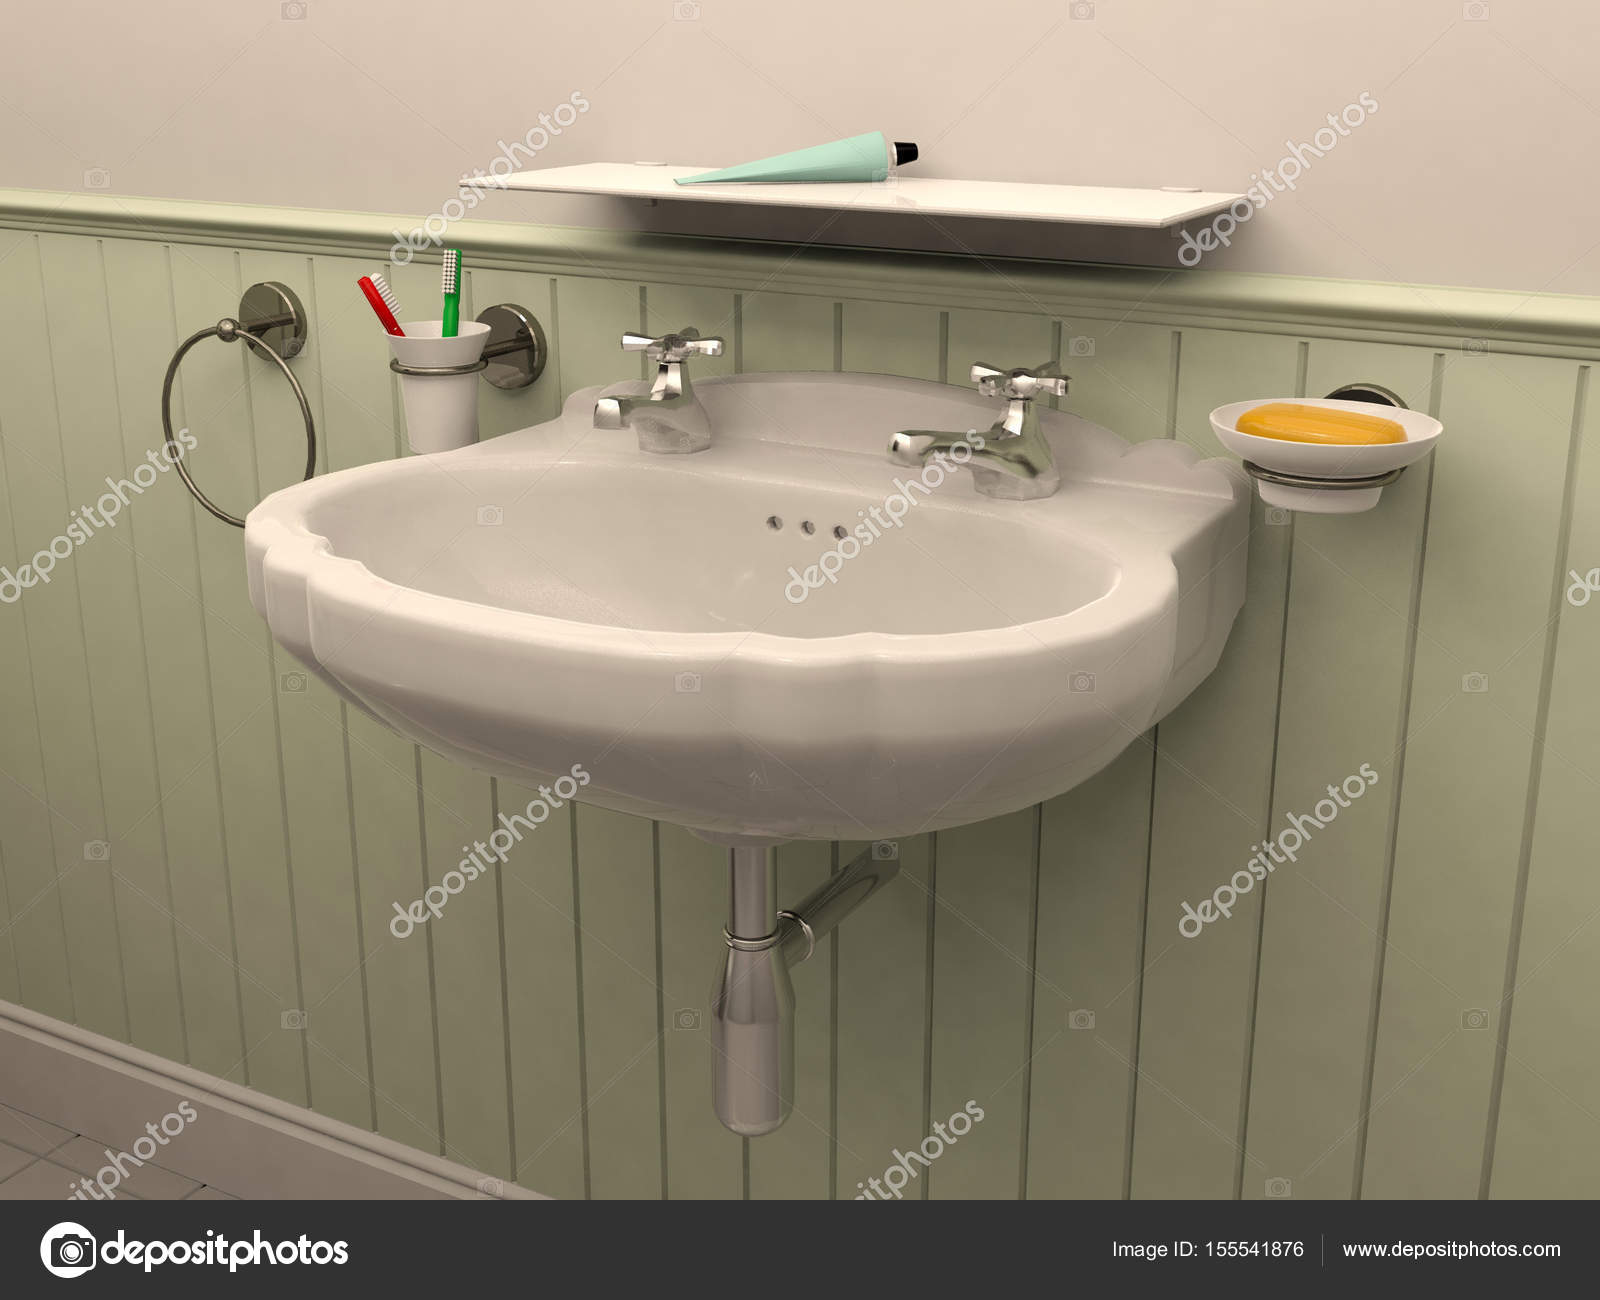 Wasbak in de wc kamer interieur u2014 stockfoto © geerati@gmail.com